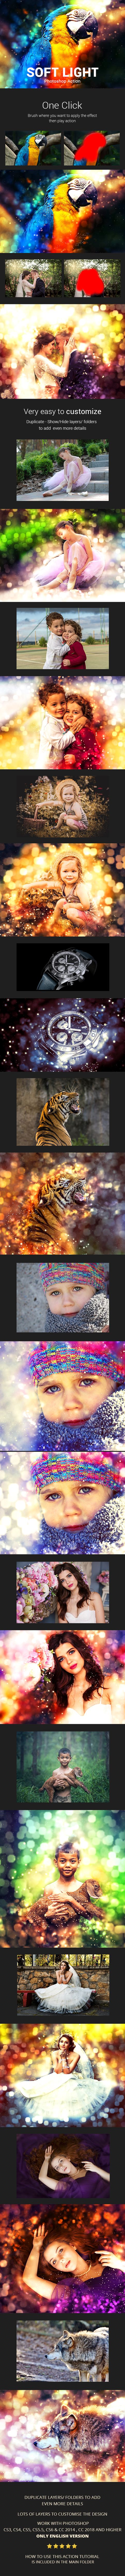 Soft Light Photoshop Action - Advanced - Photo Effects Actions